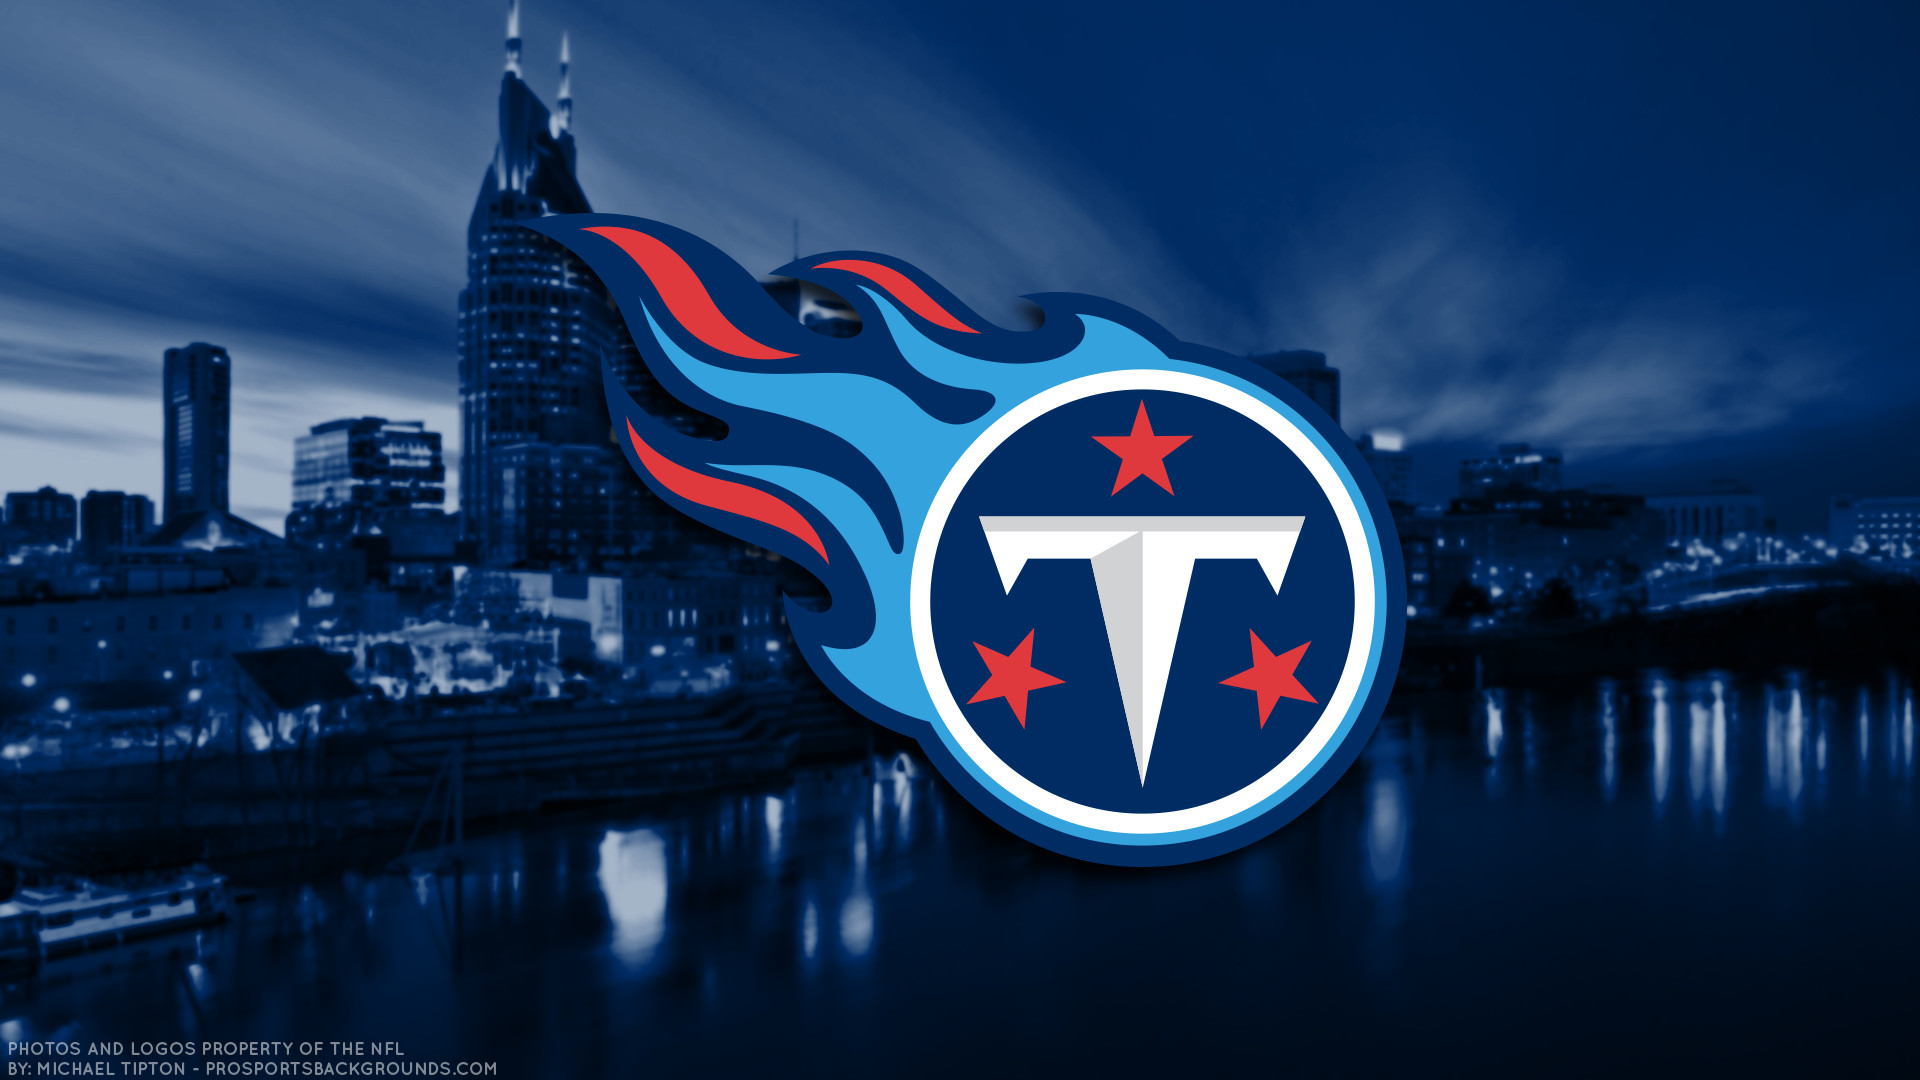 1920x1080 ... tennessee titans 2017 football logo wallpaper pc desktop computer nfl background  hd 4k